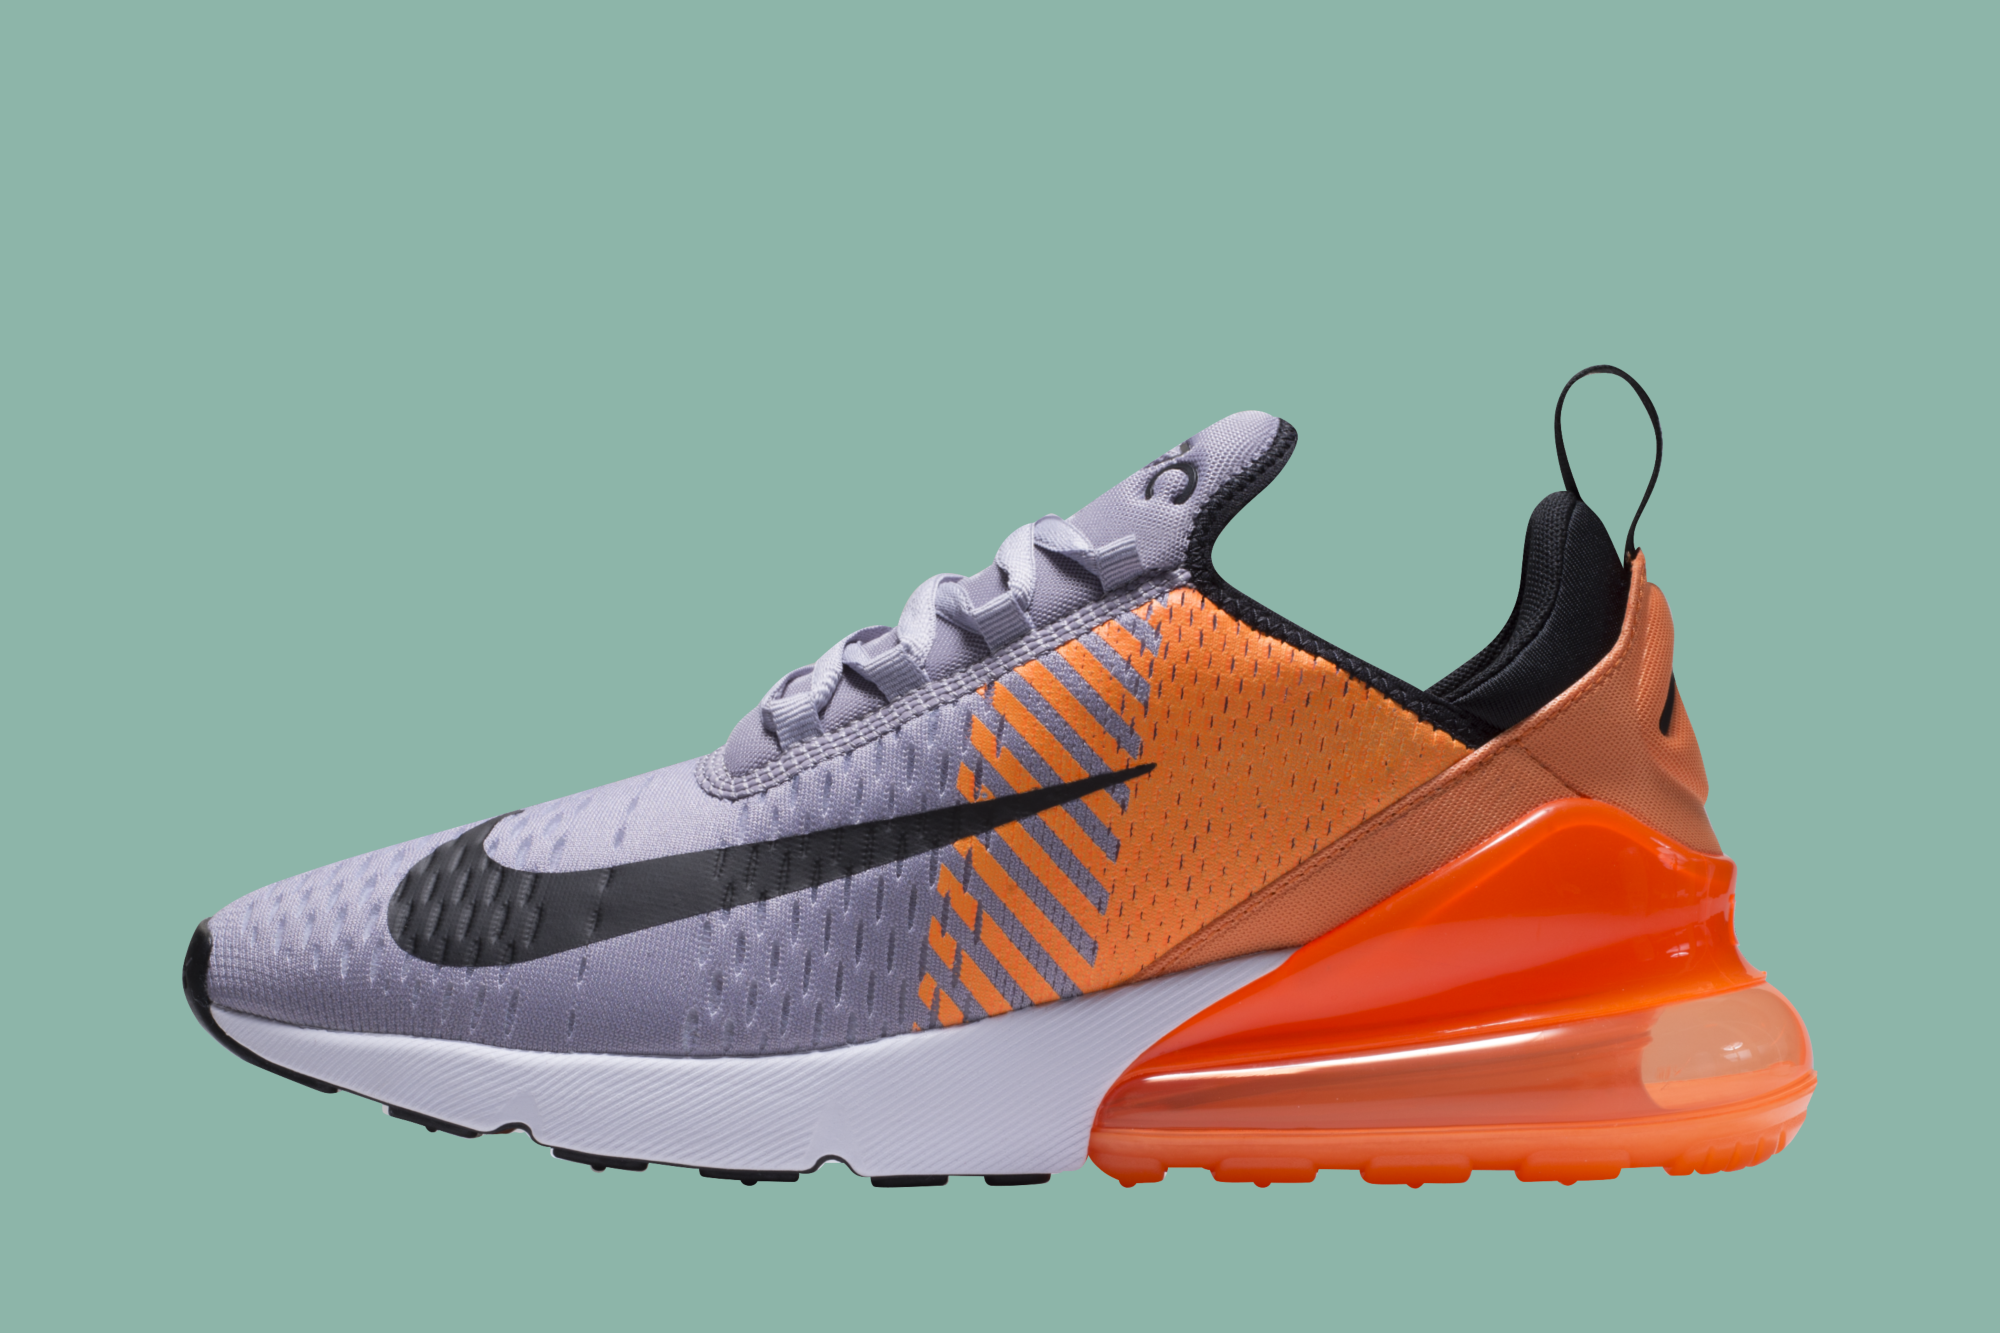 Kicks Deals – Official Website Nike Air Max 270 PRM iD